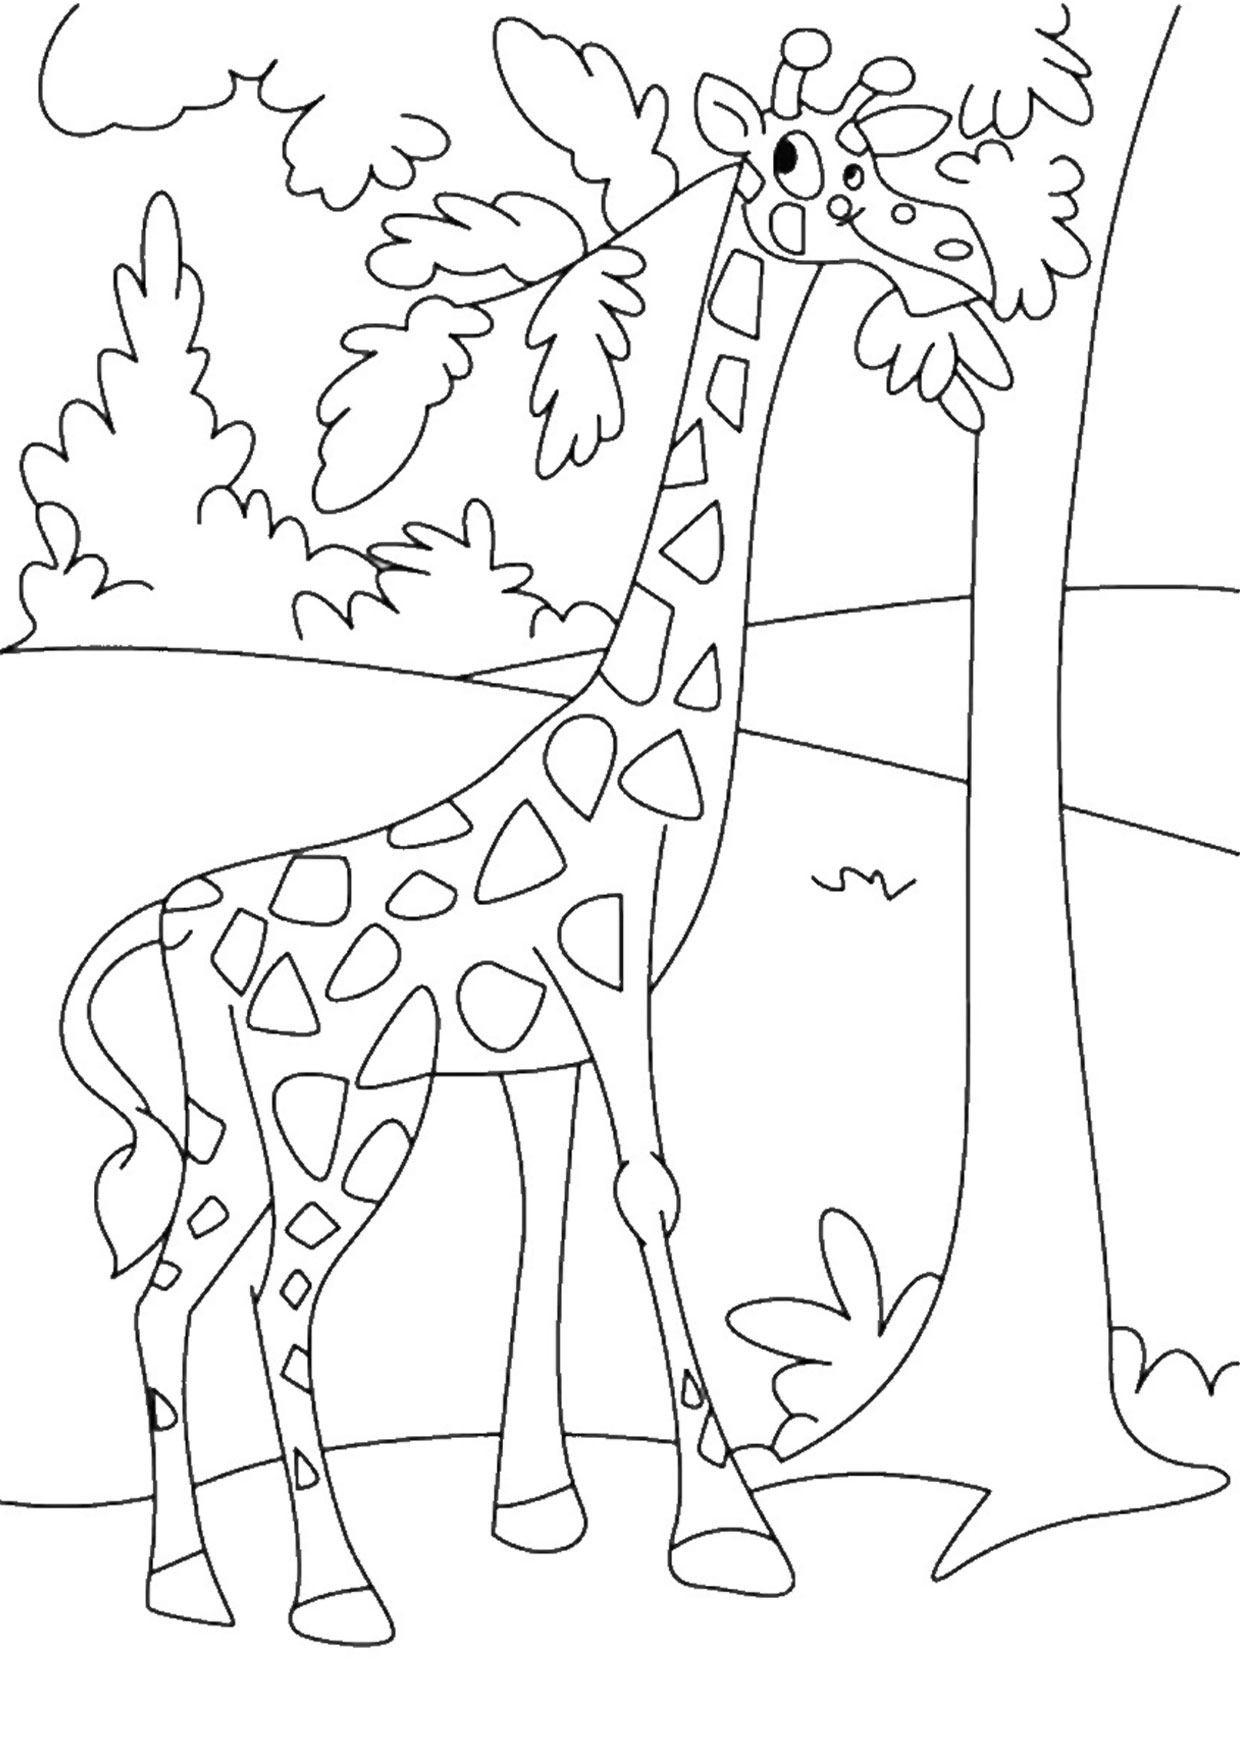 Giraffa in versione cartoon 05